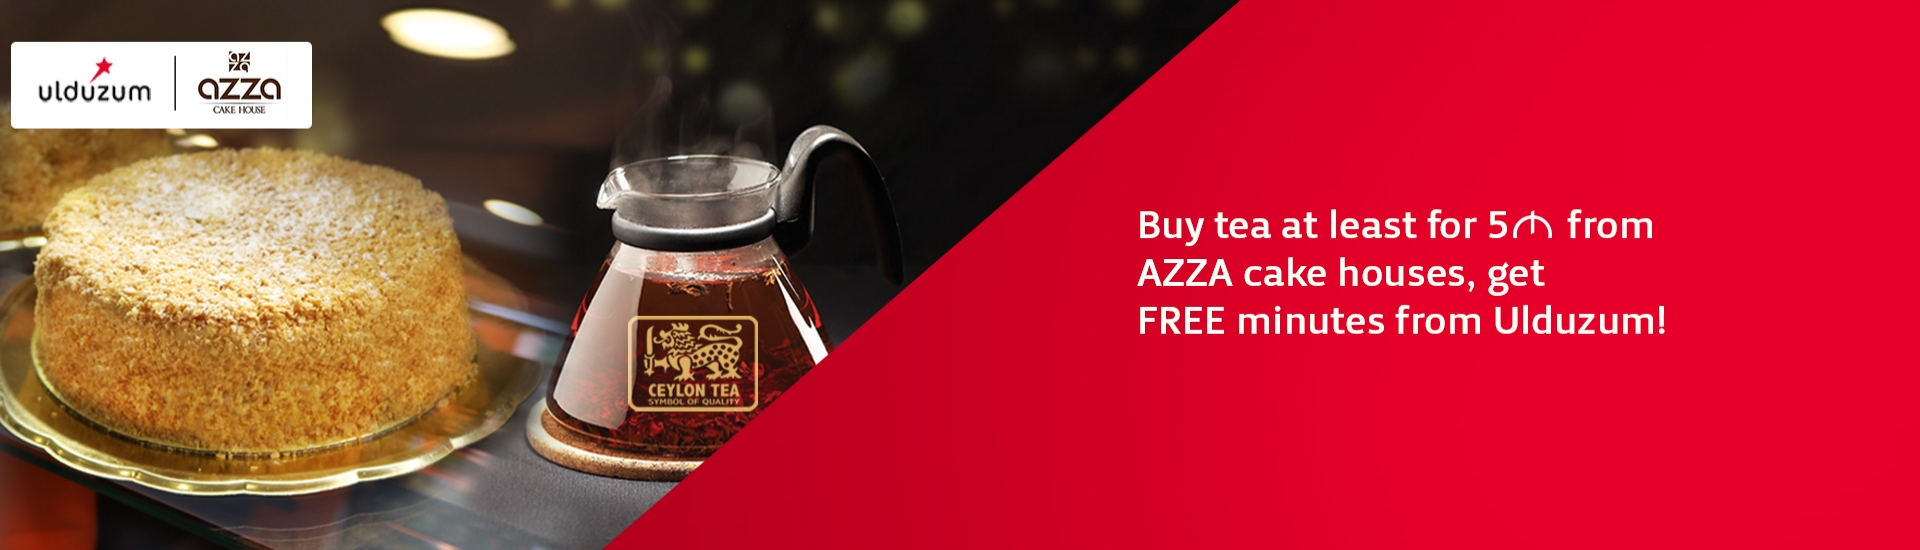 FREE MINUTES from Ulduzum and AZZA!